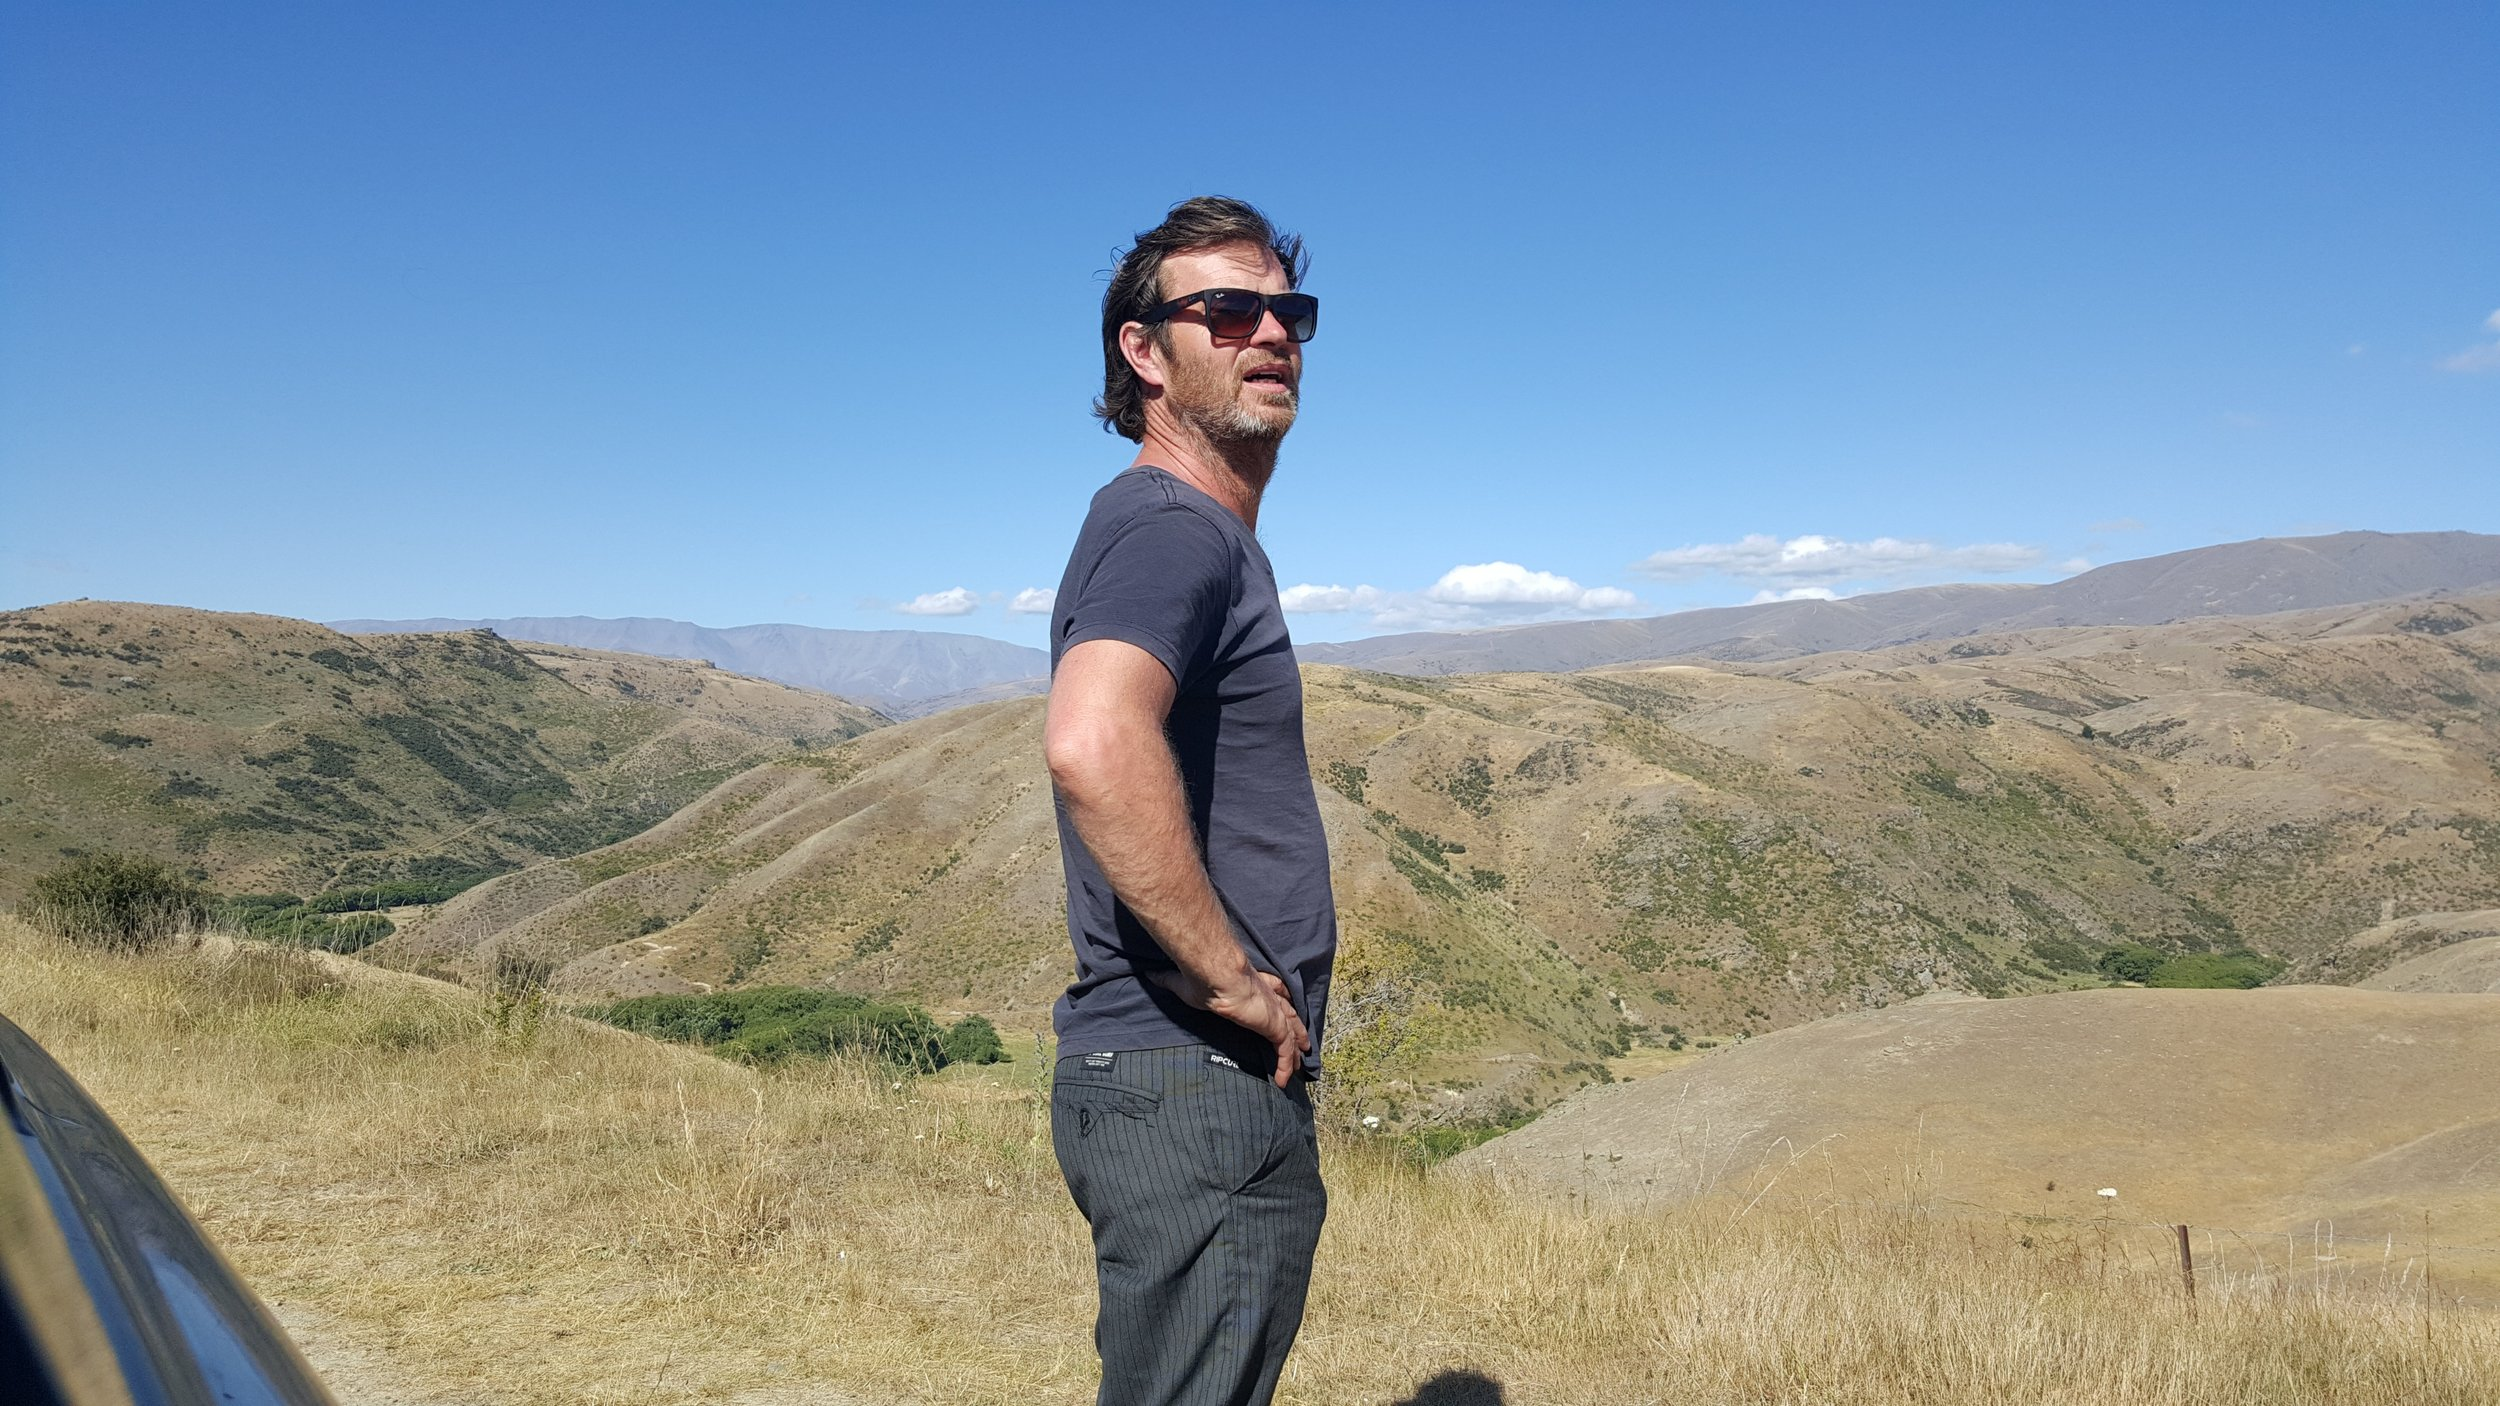 Frank on location. Lindis Pass, South Island, New Zealand